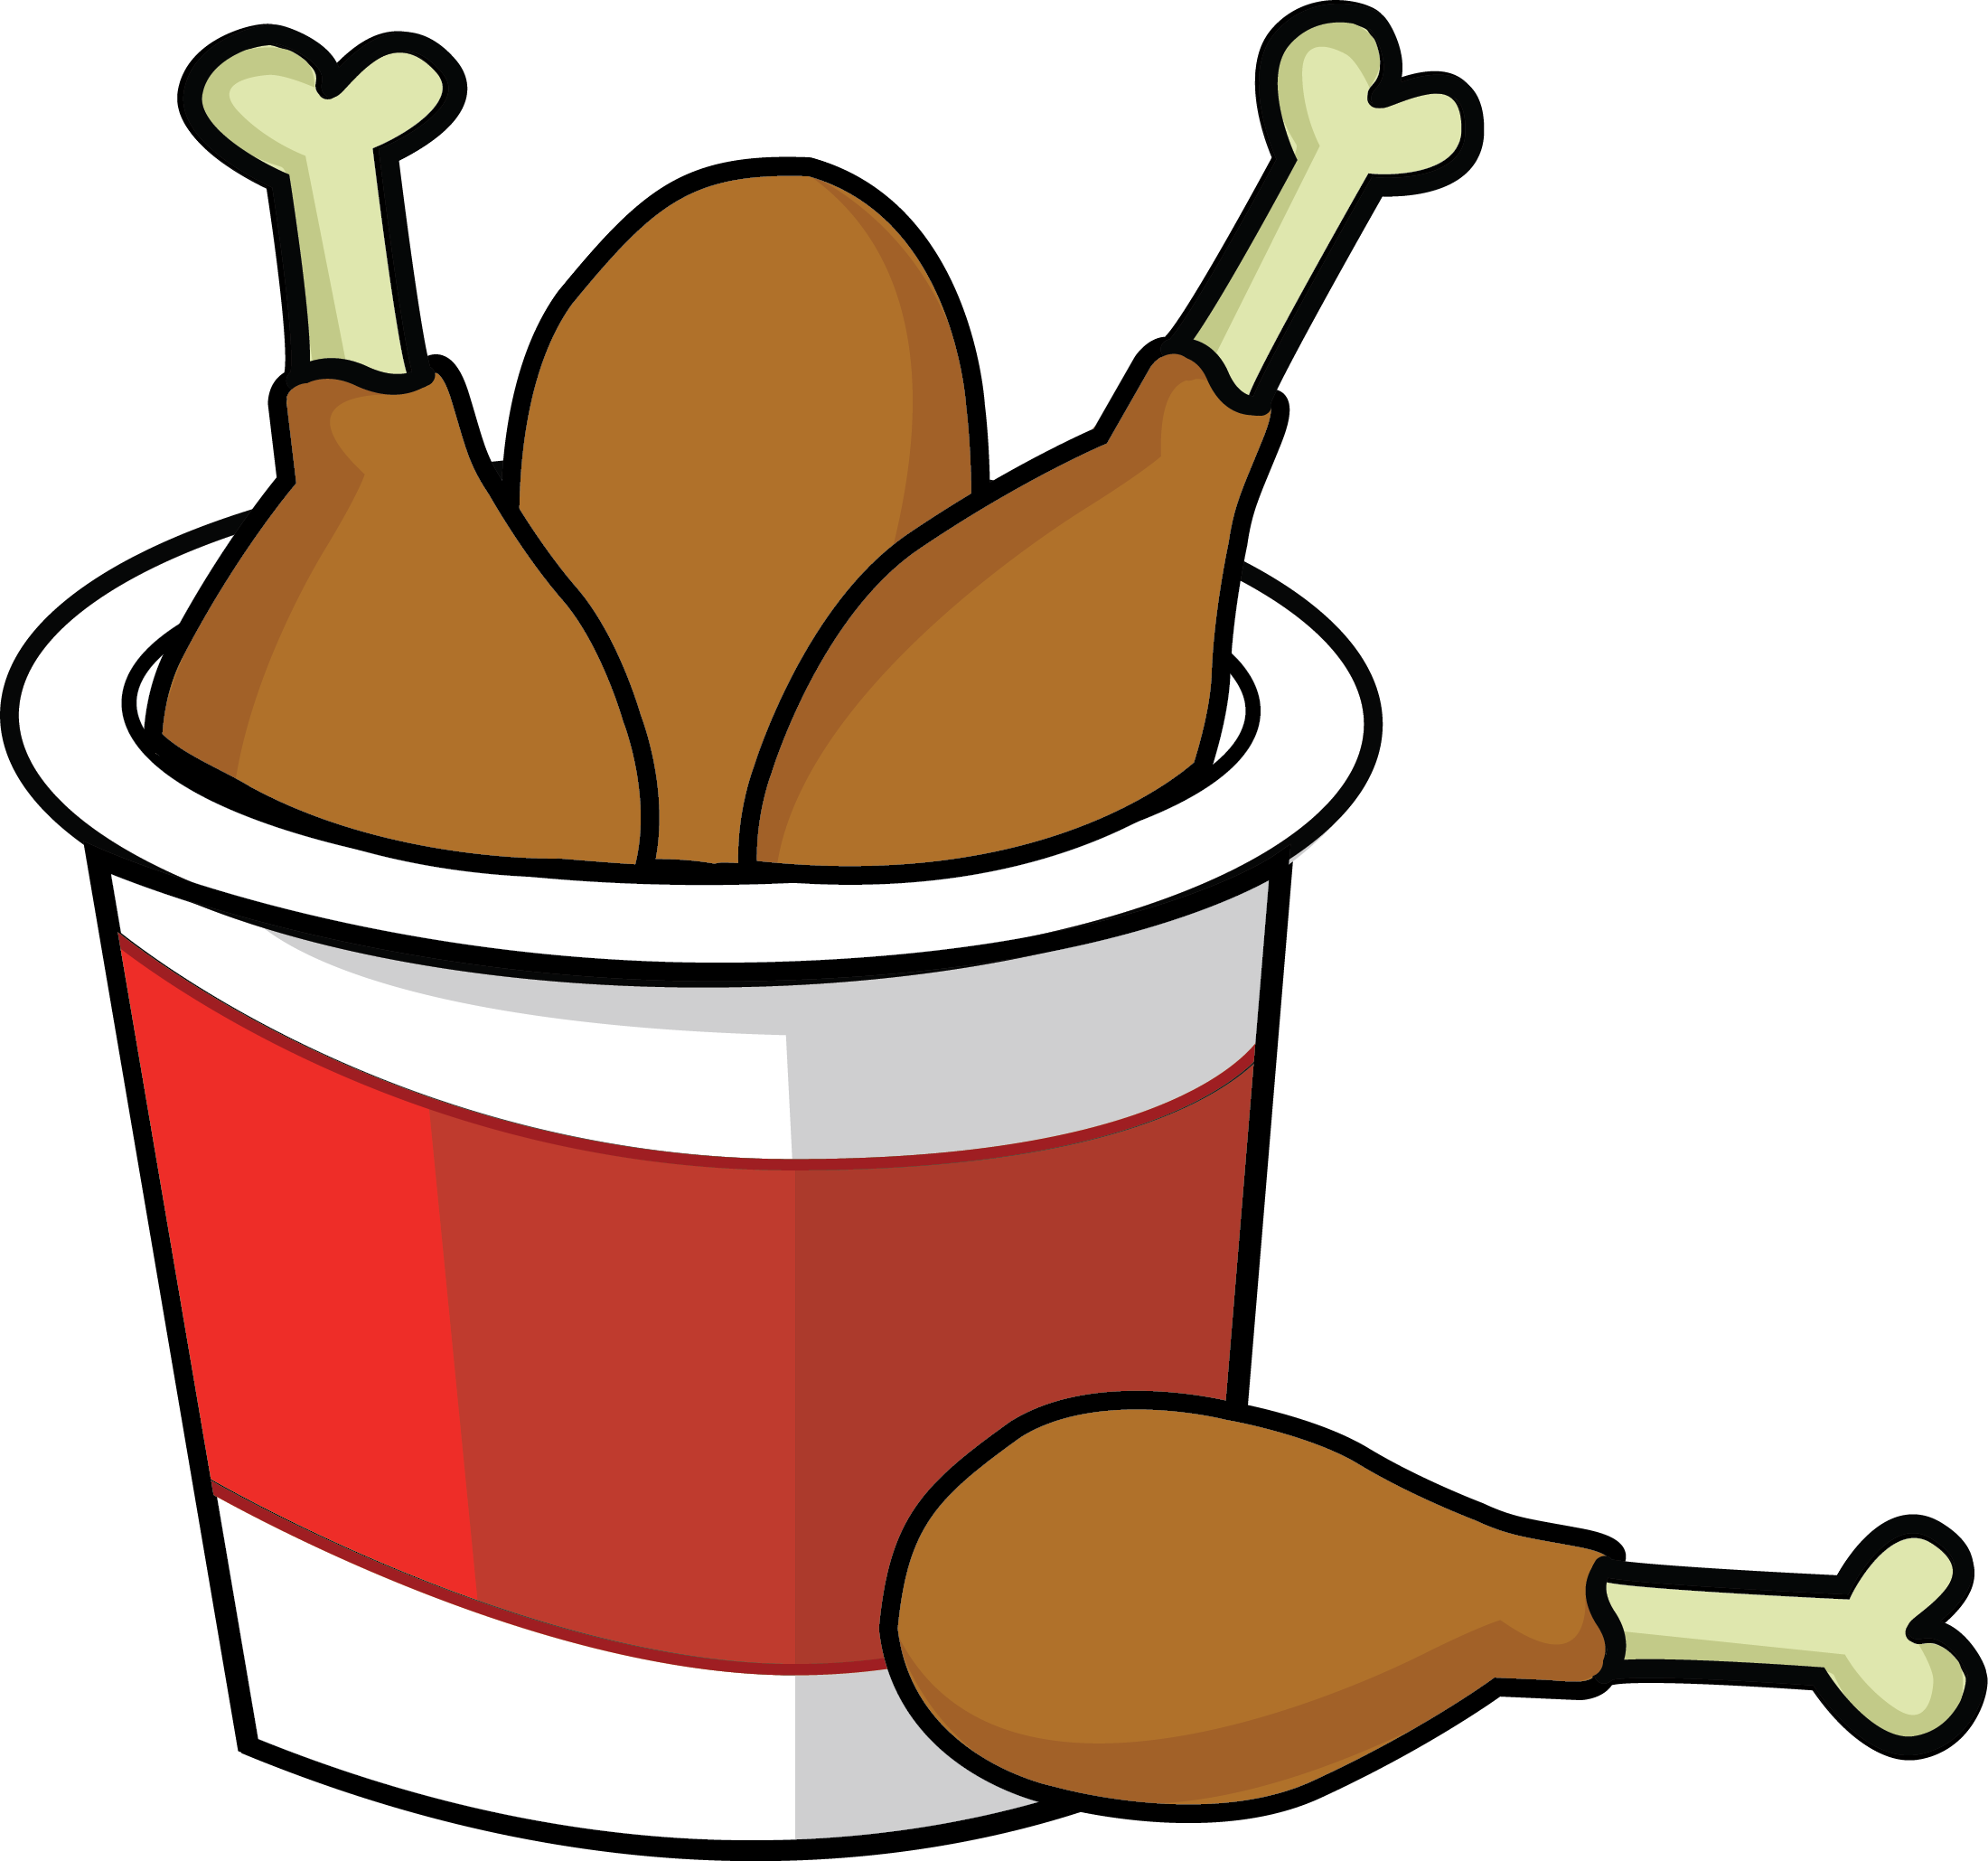 Chicken fried free clipart